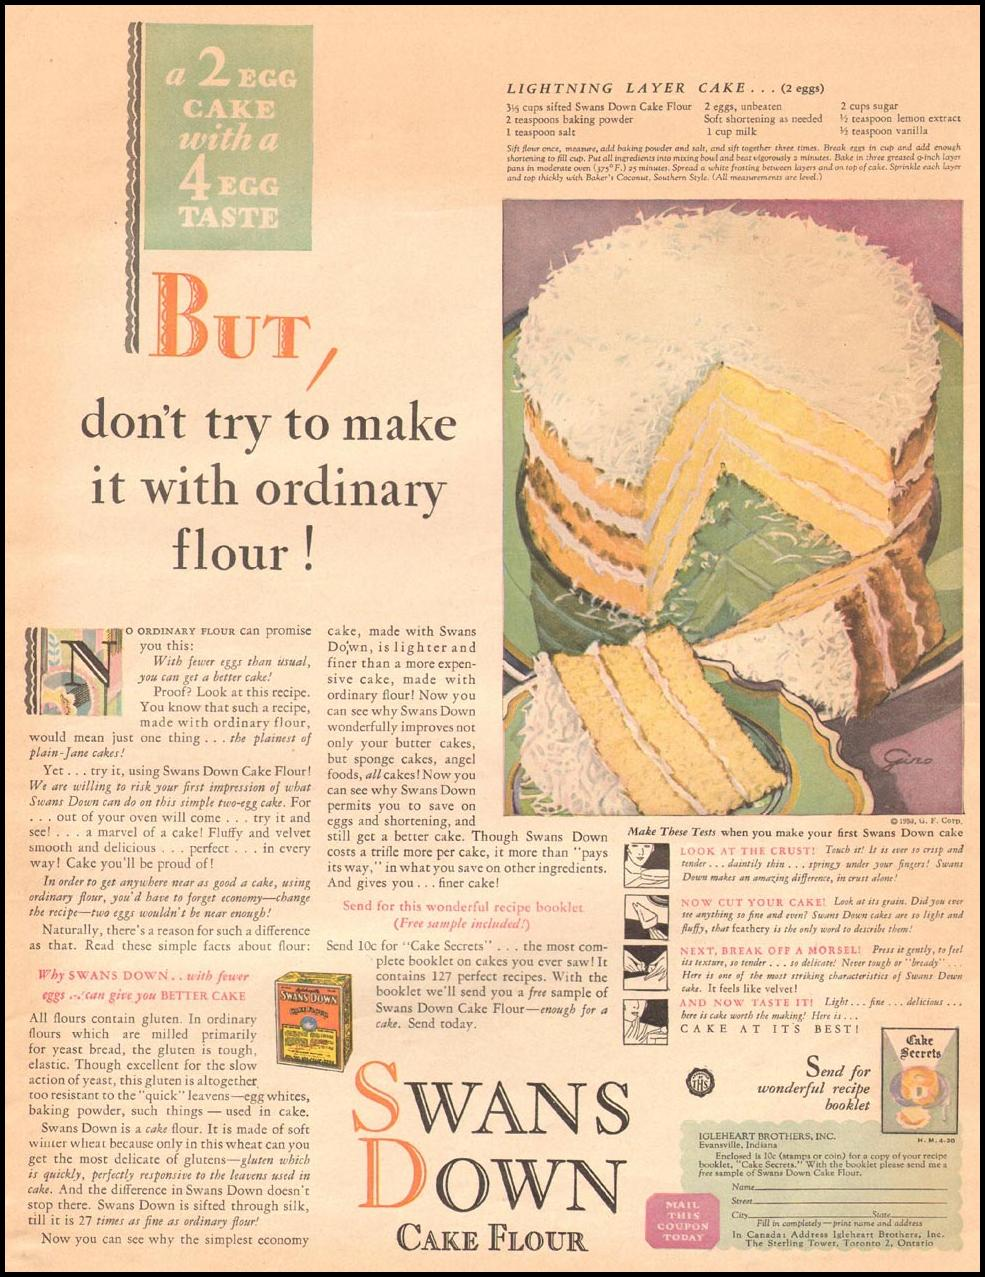 SWANS DOWN CAKE FLOUR THE HOME MAGAZINE 04/01/1930 p. 13